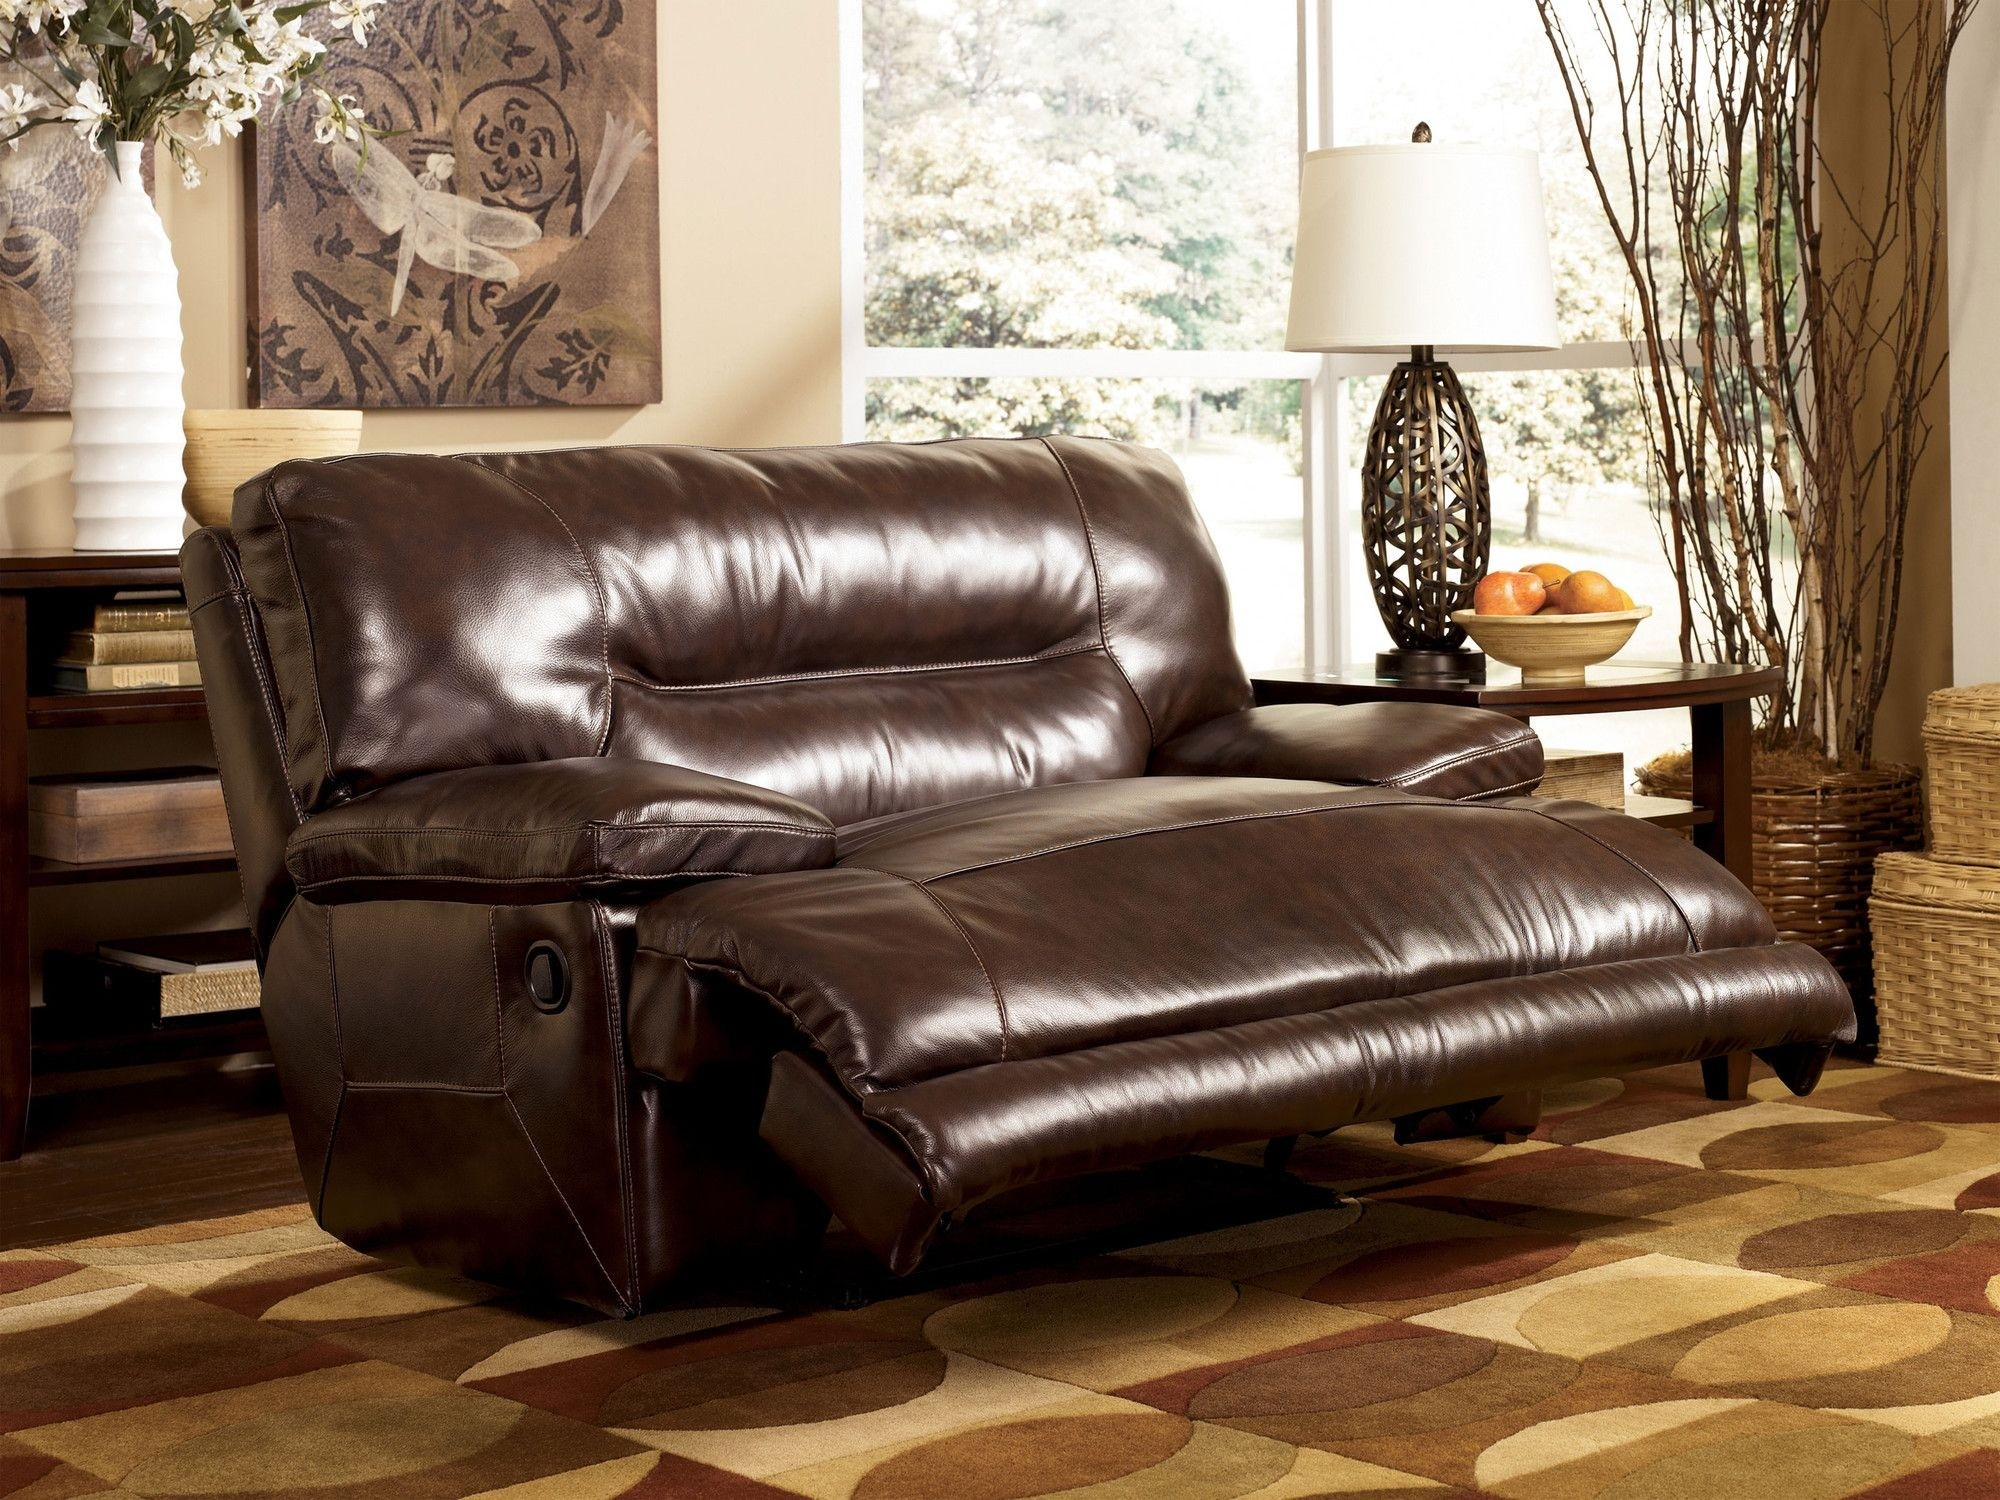 Charmant Two Person Recliner 1